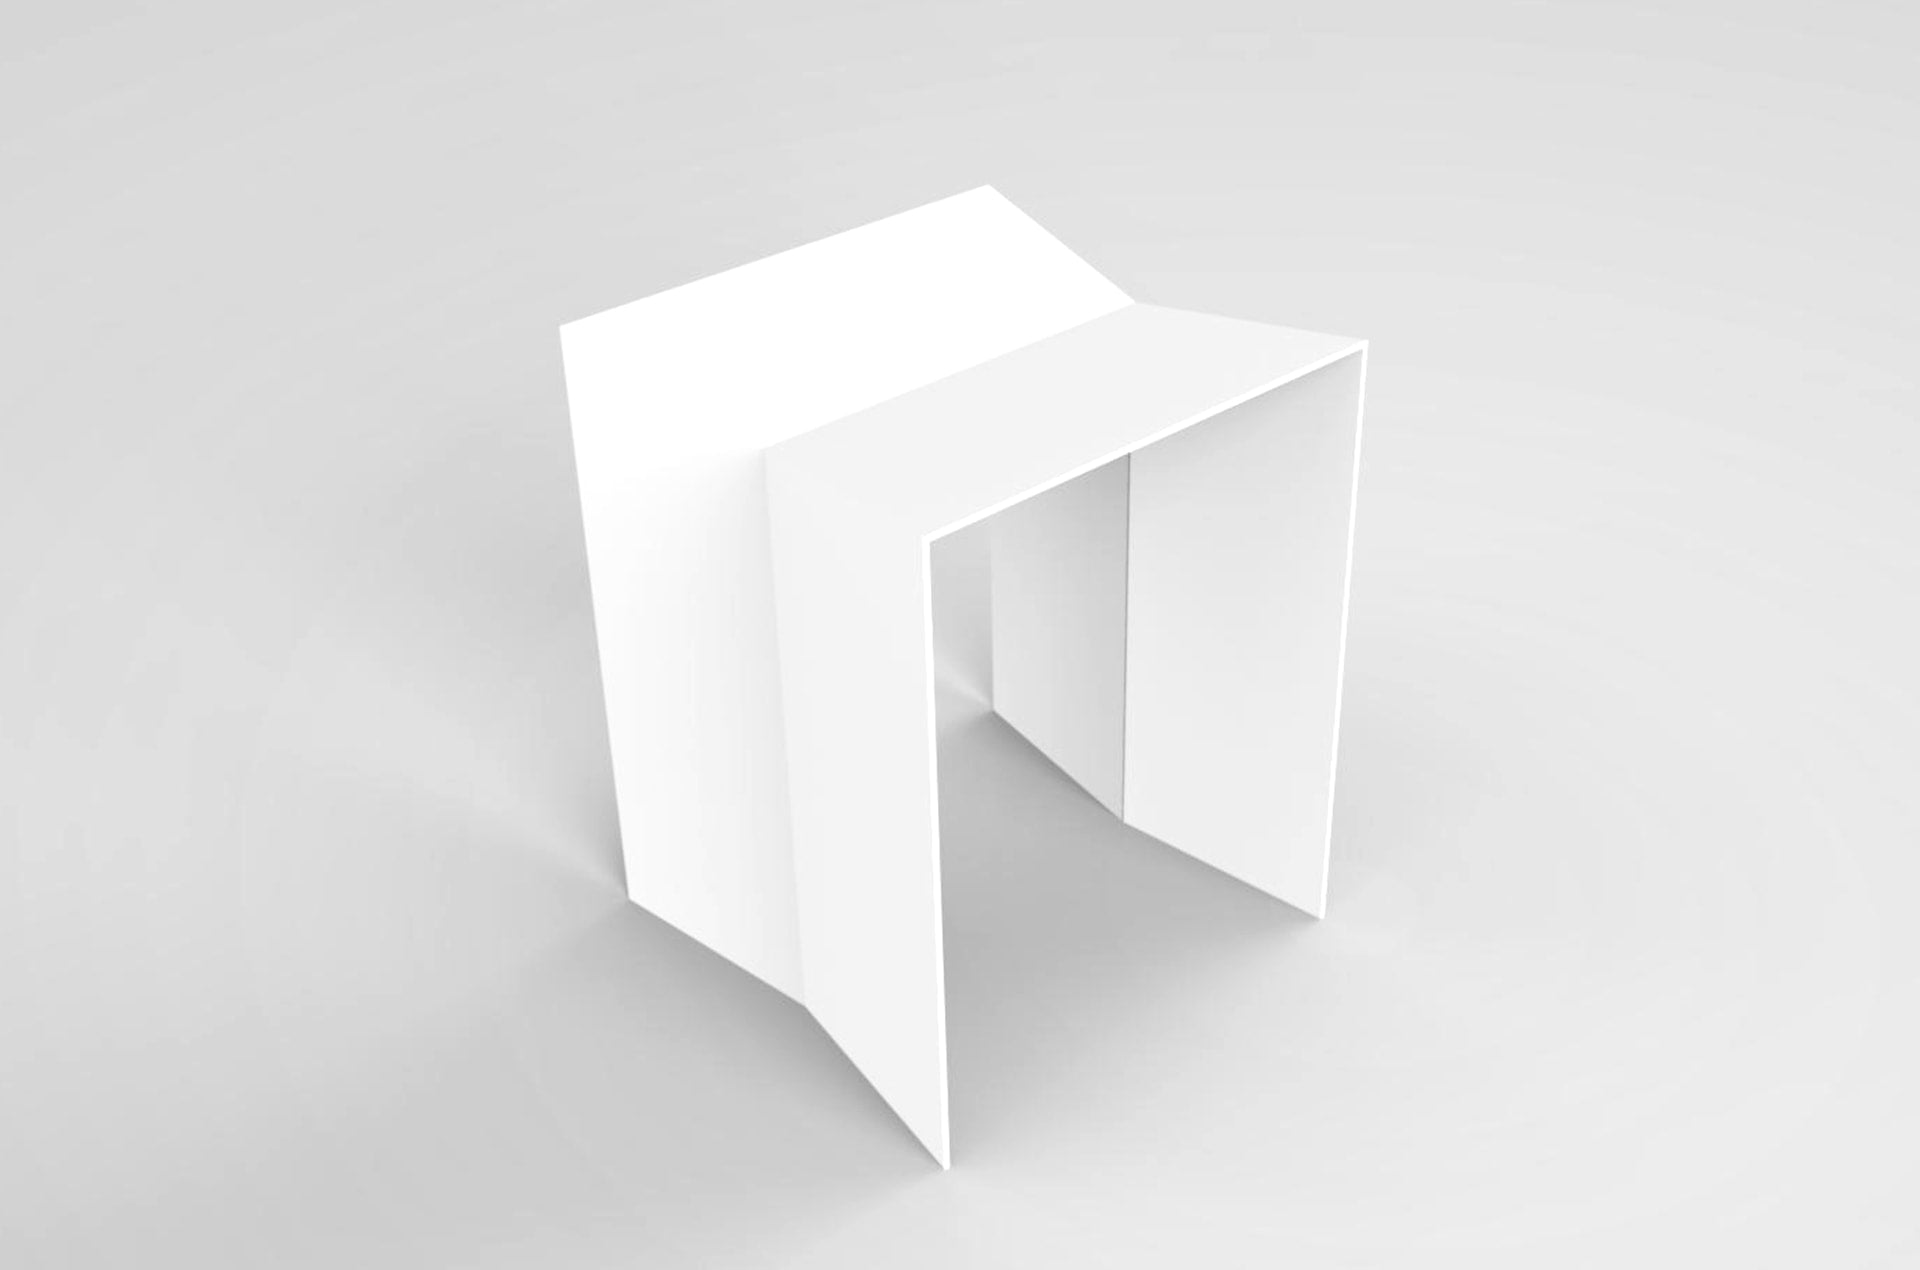 Tabouret acier blanc Bulm by Slawinski-PARIDEO design durable